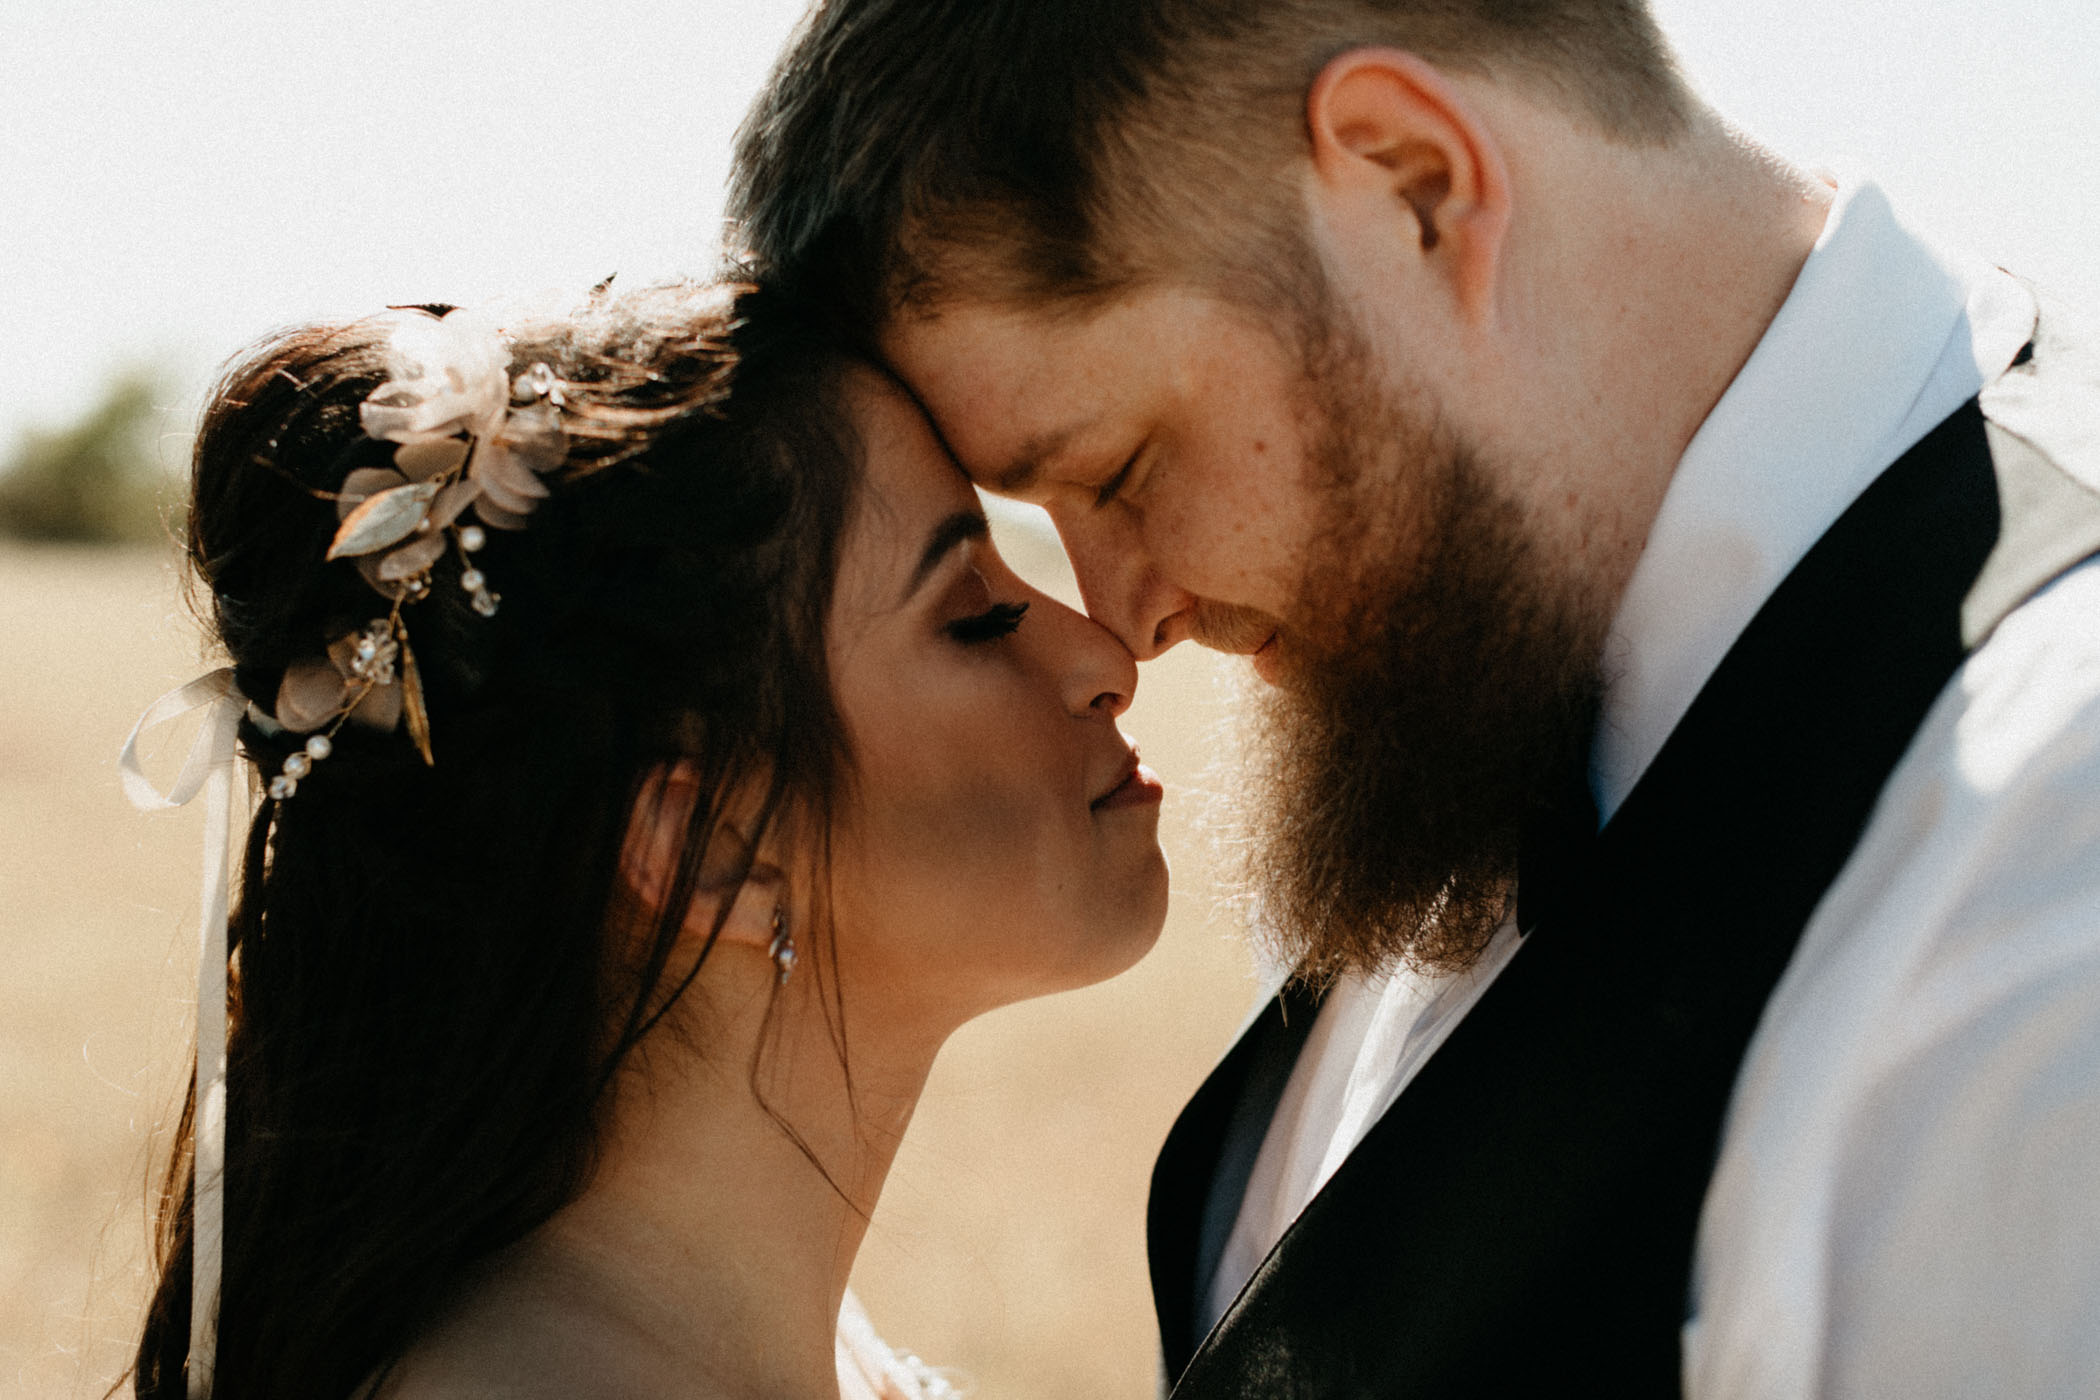 bride and groom putting foreheads together for romantic wedding photo